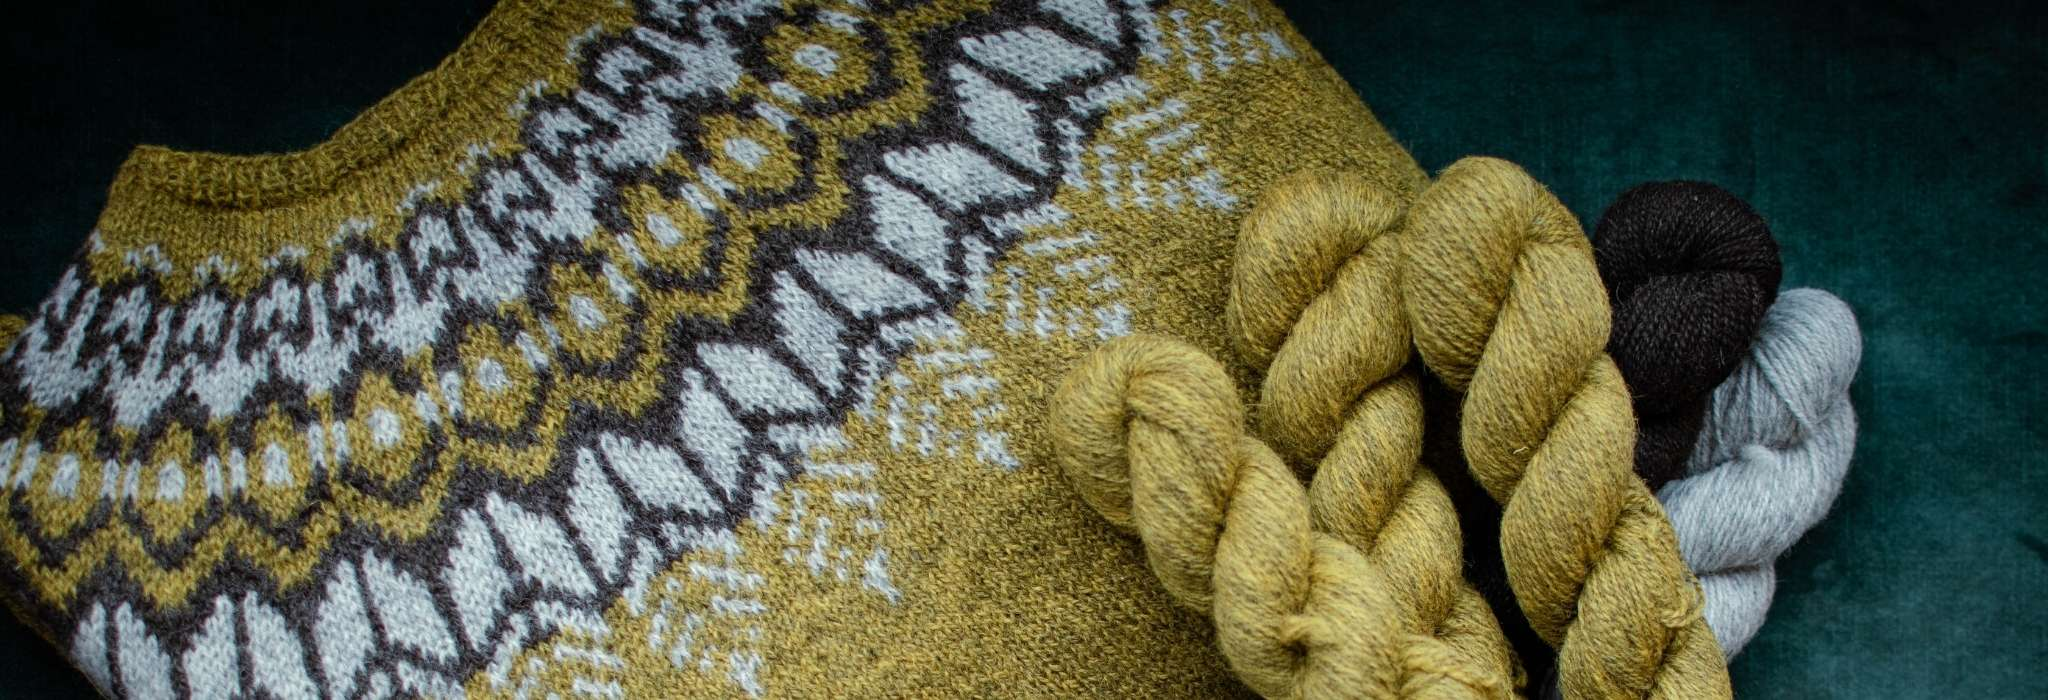 A close up of part of a colourwork yoke sweater in gold, brown and white. Some of the model's dark is visible over the top of the shoulder.